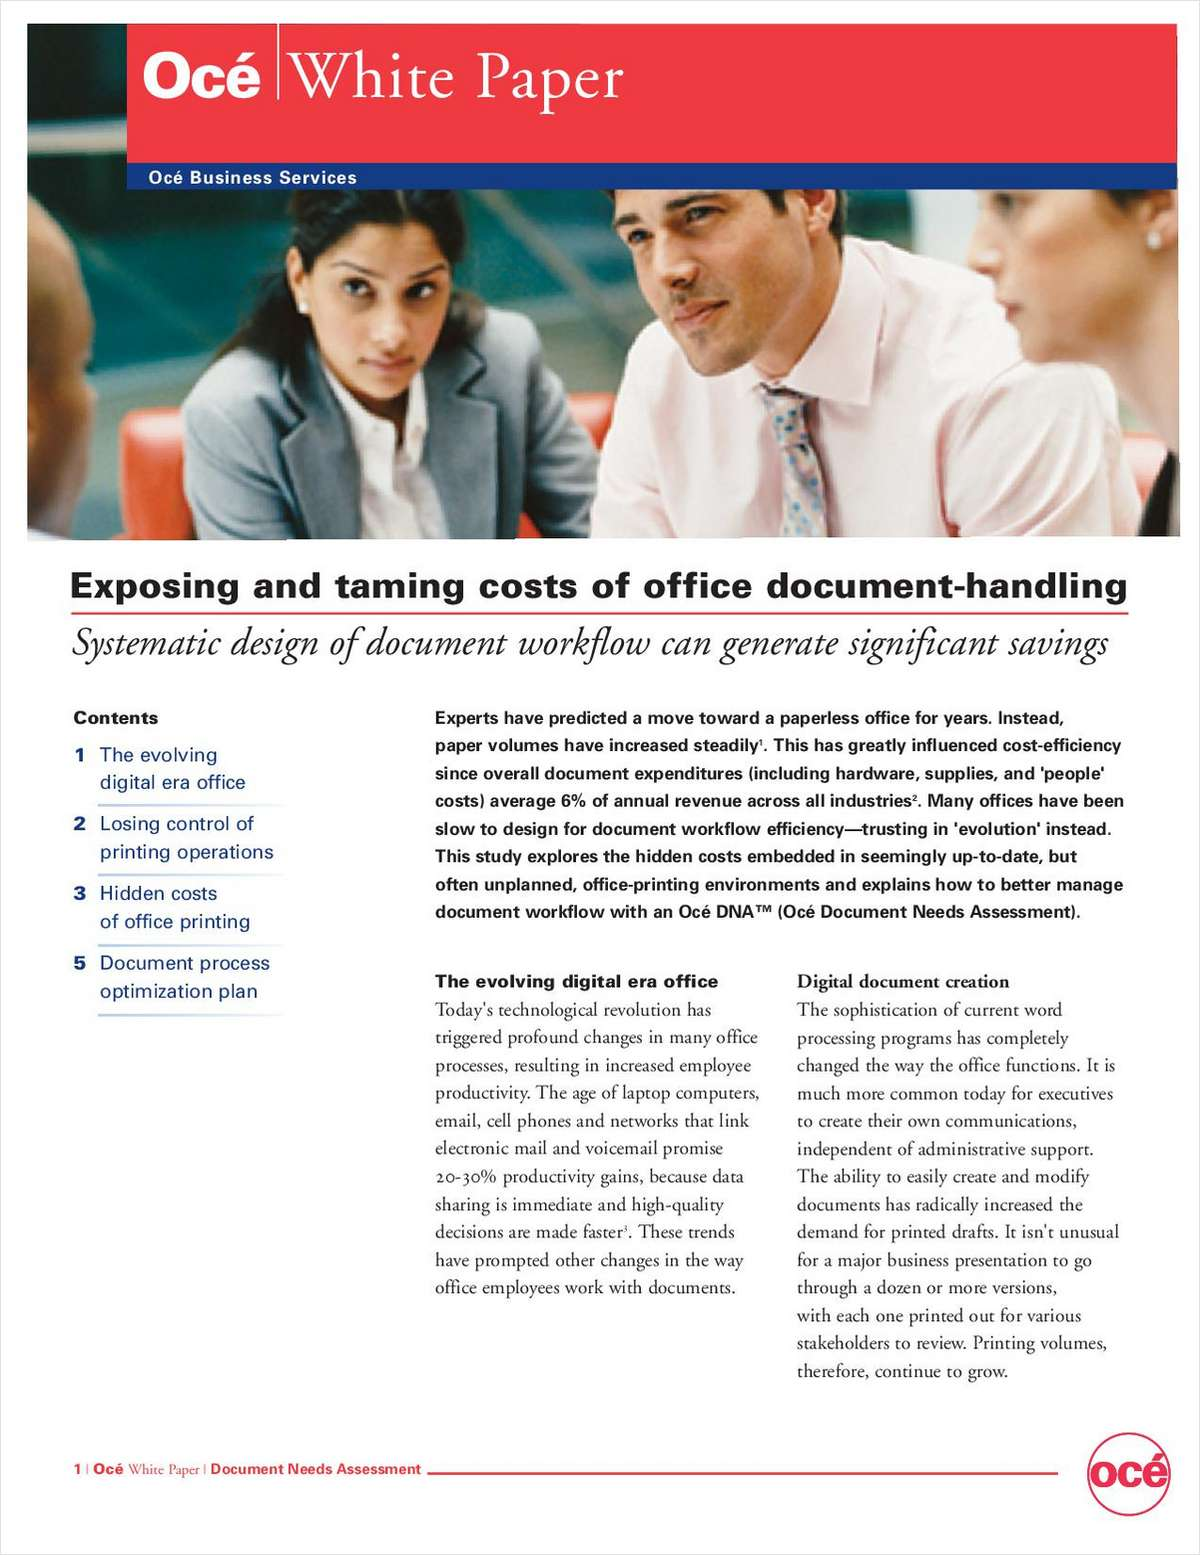 Exposing and Taming Costs of Office Document-Handling